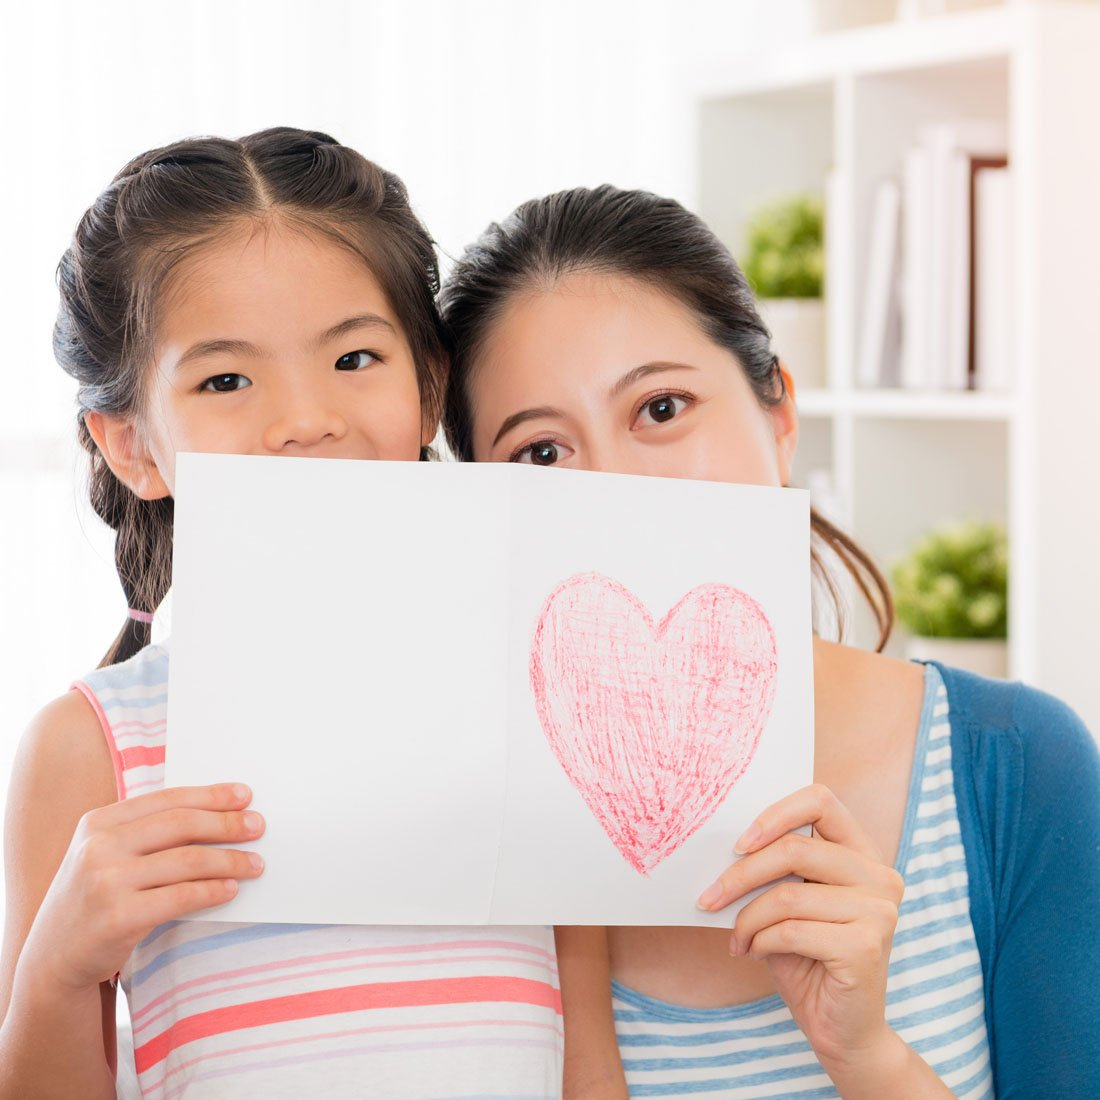 mom-and-daughter-holding-drawing-of-heart.jpg